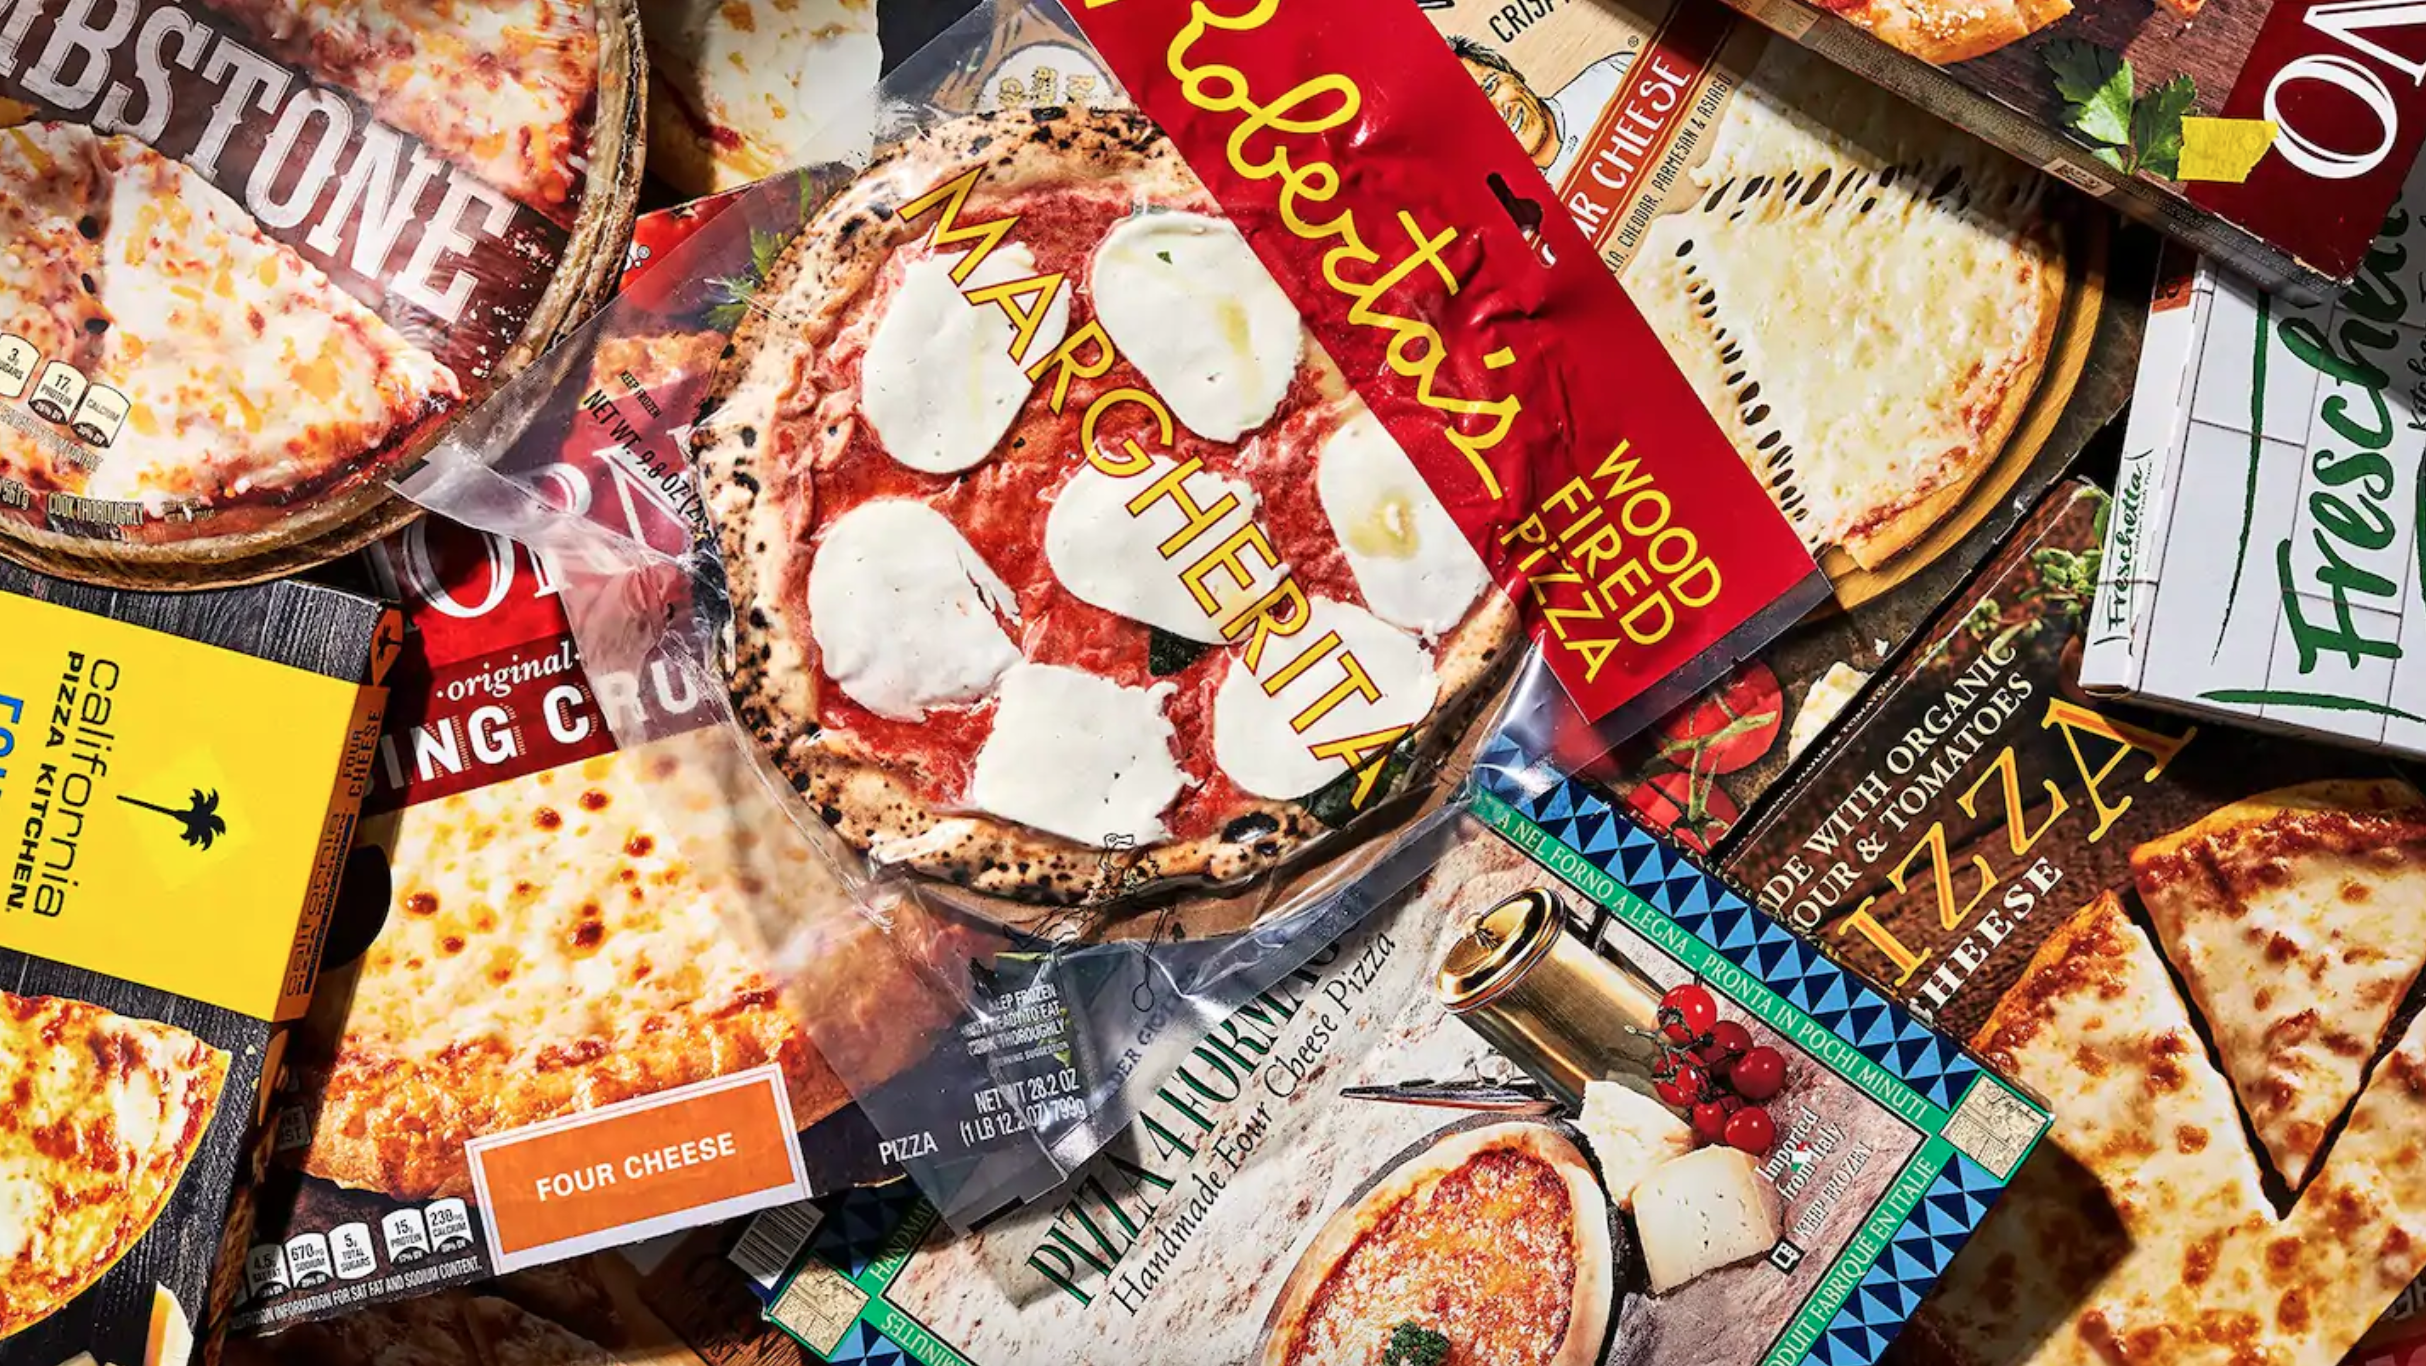 a pile of frozen pizzas from different brands